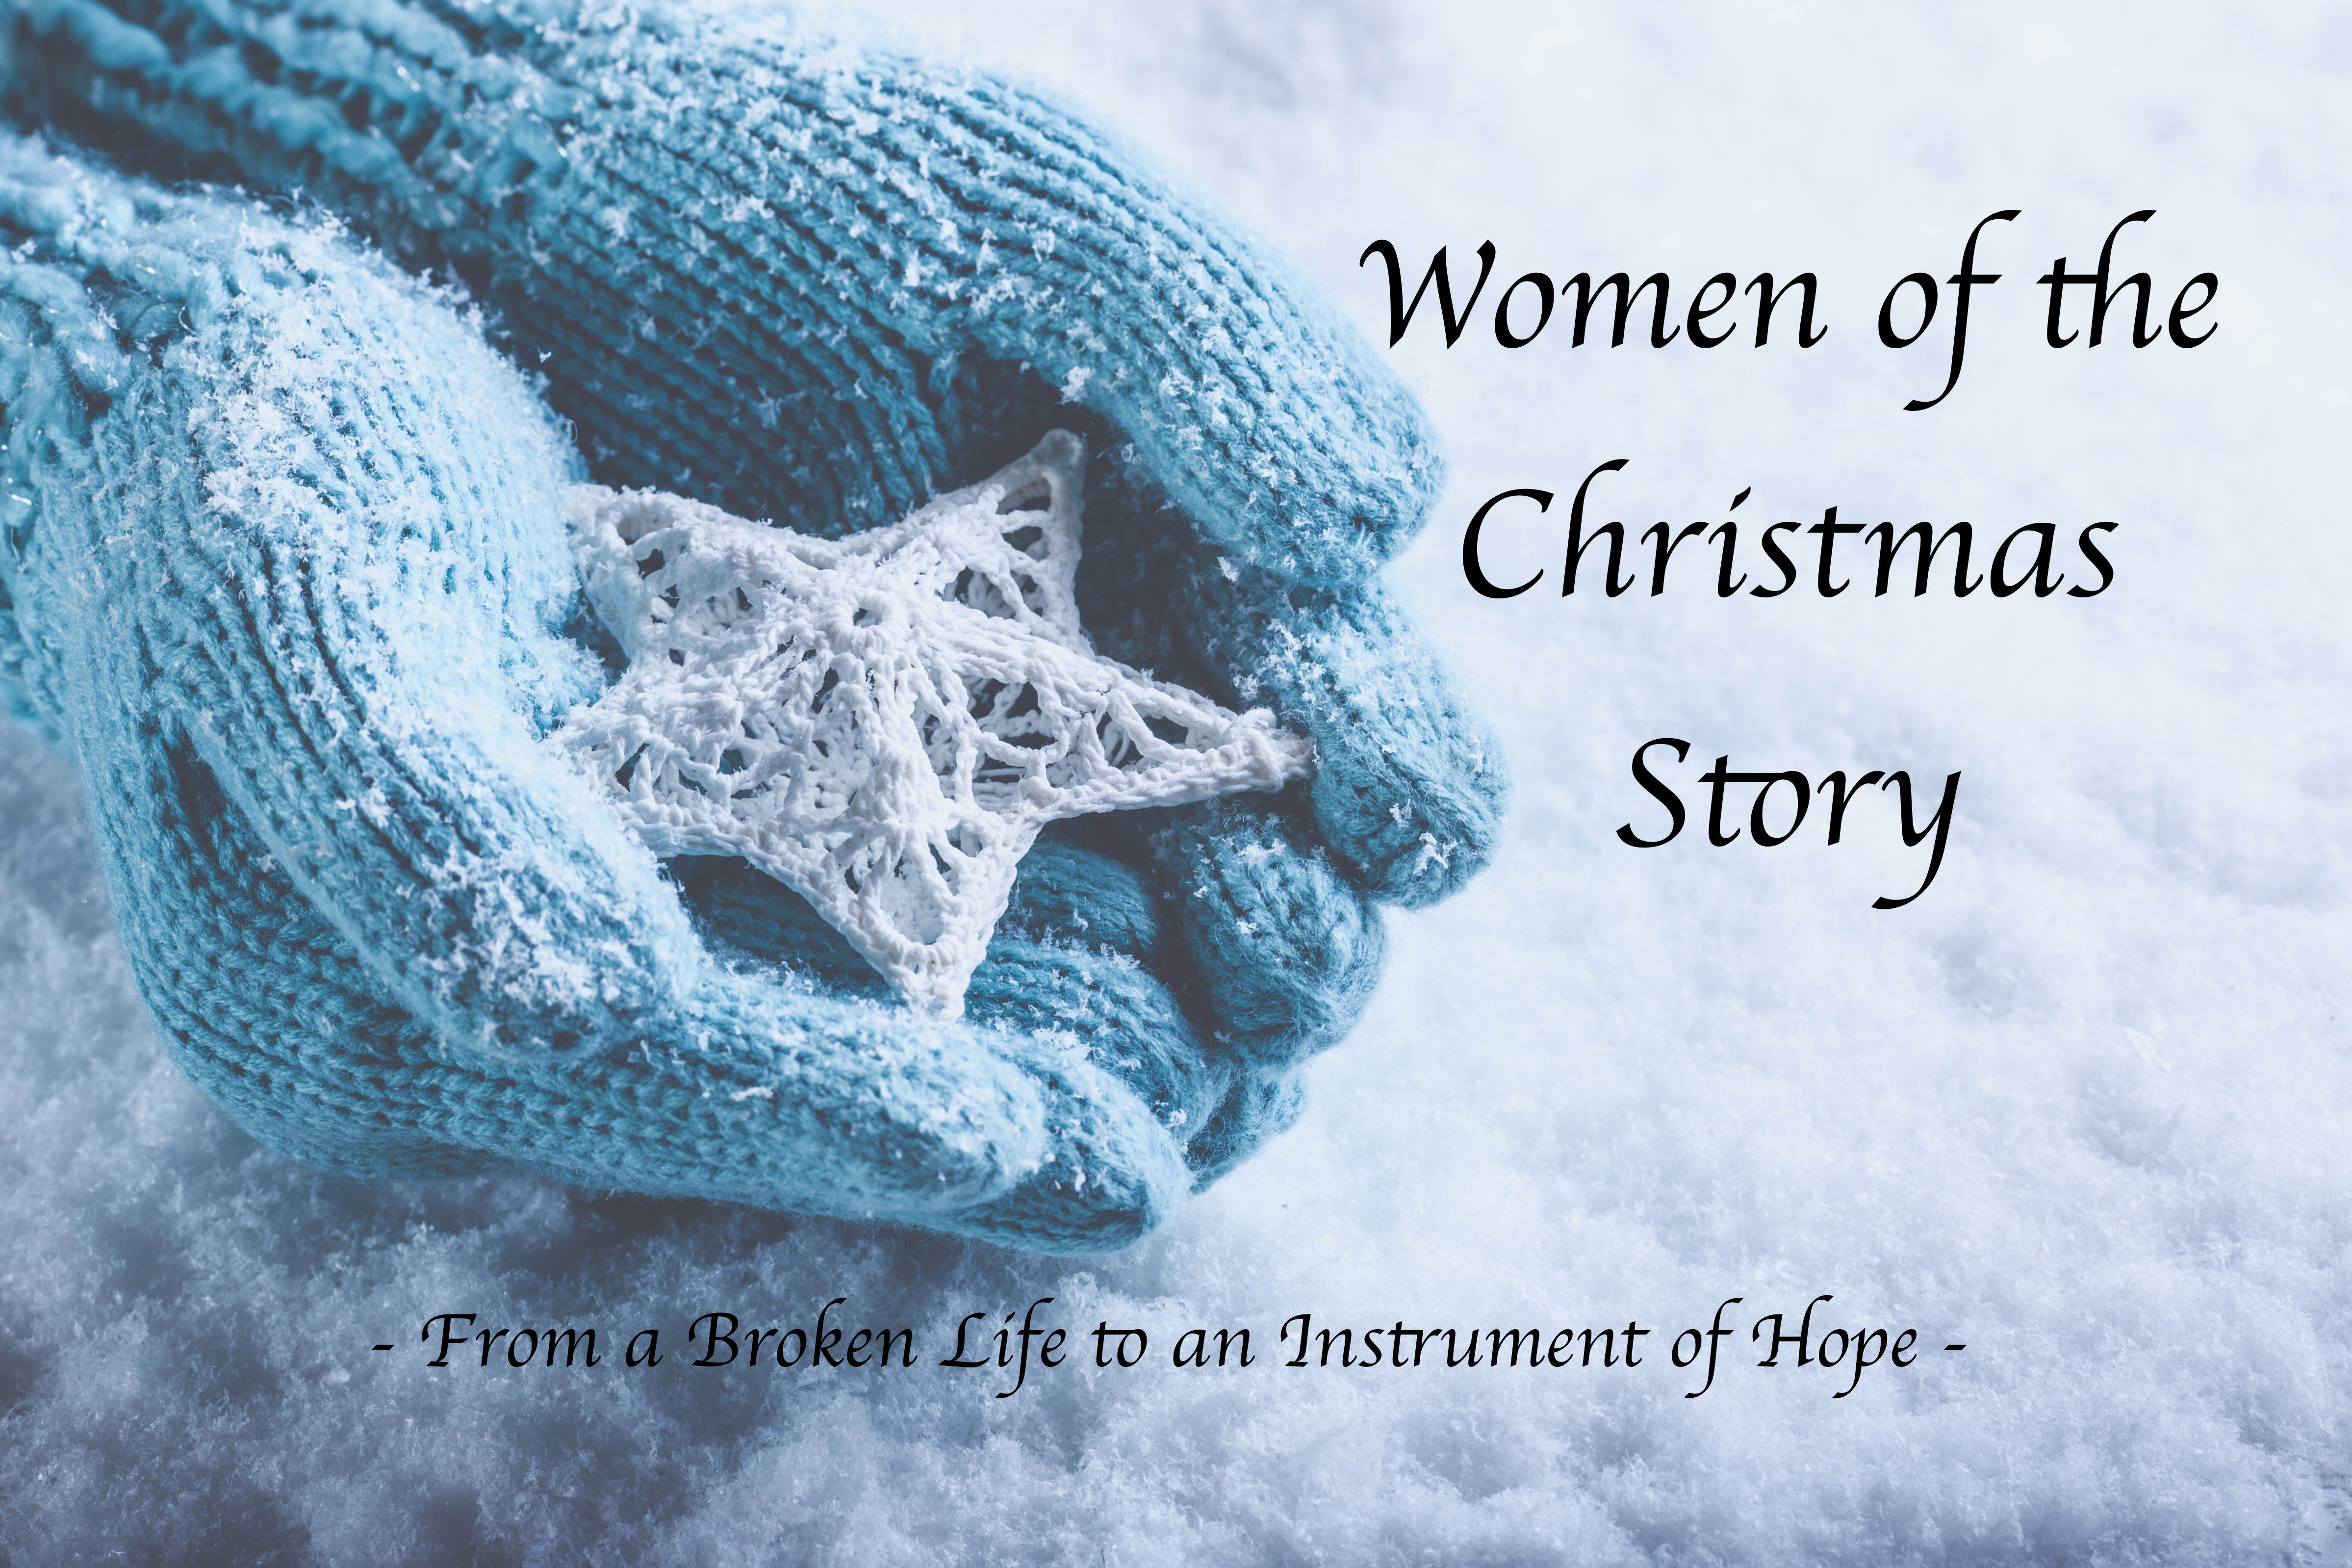 Women of the Christmas Story